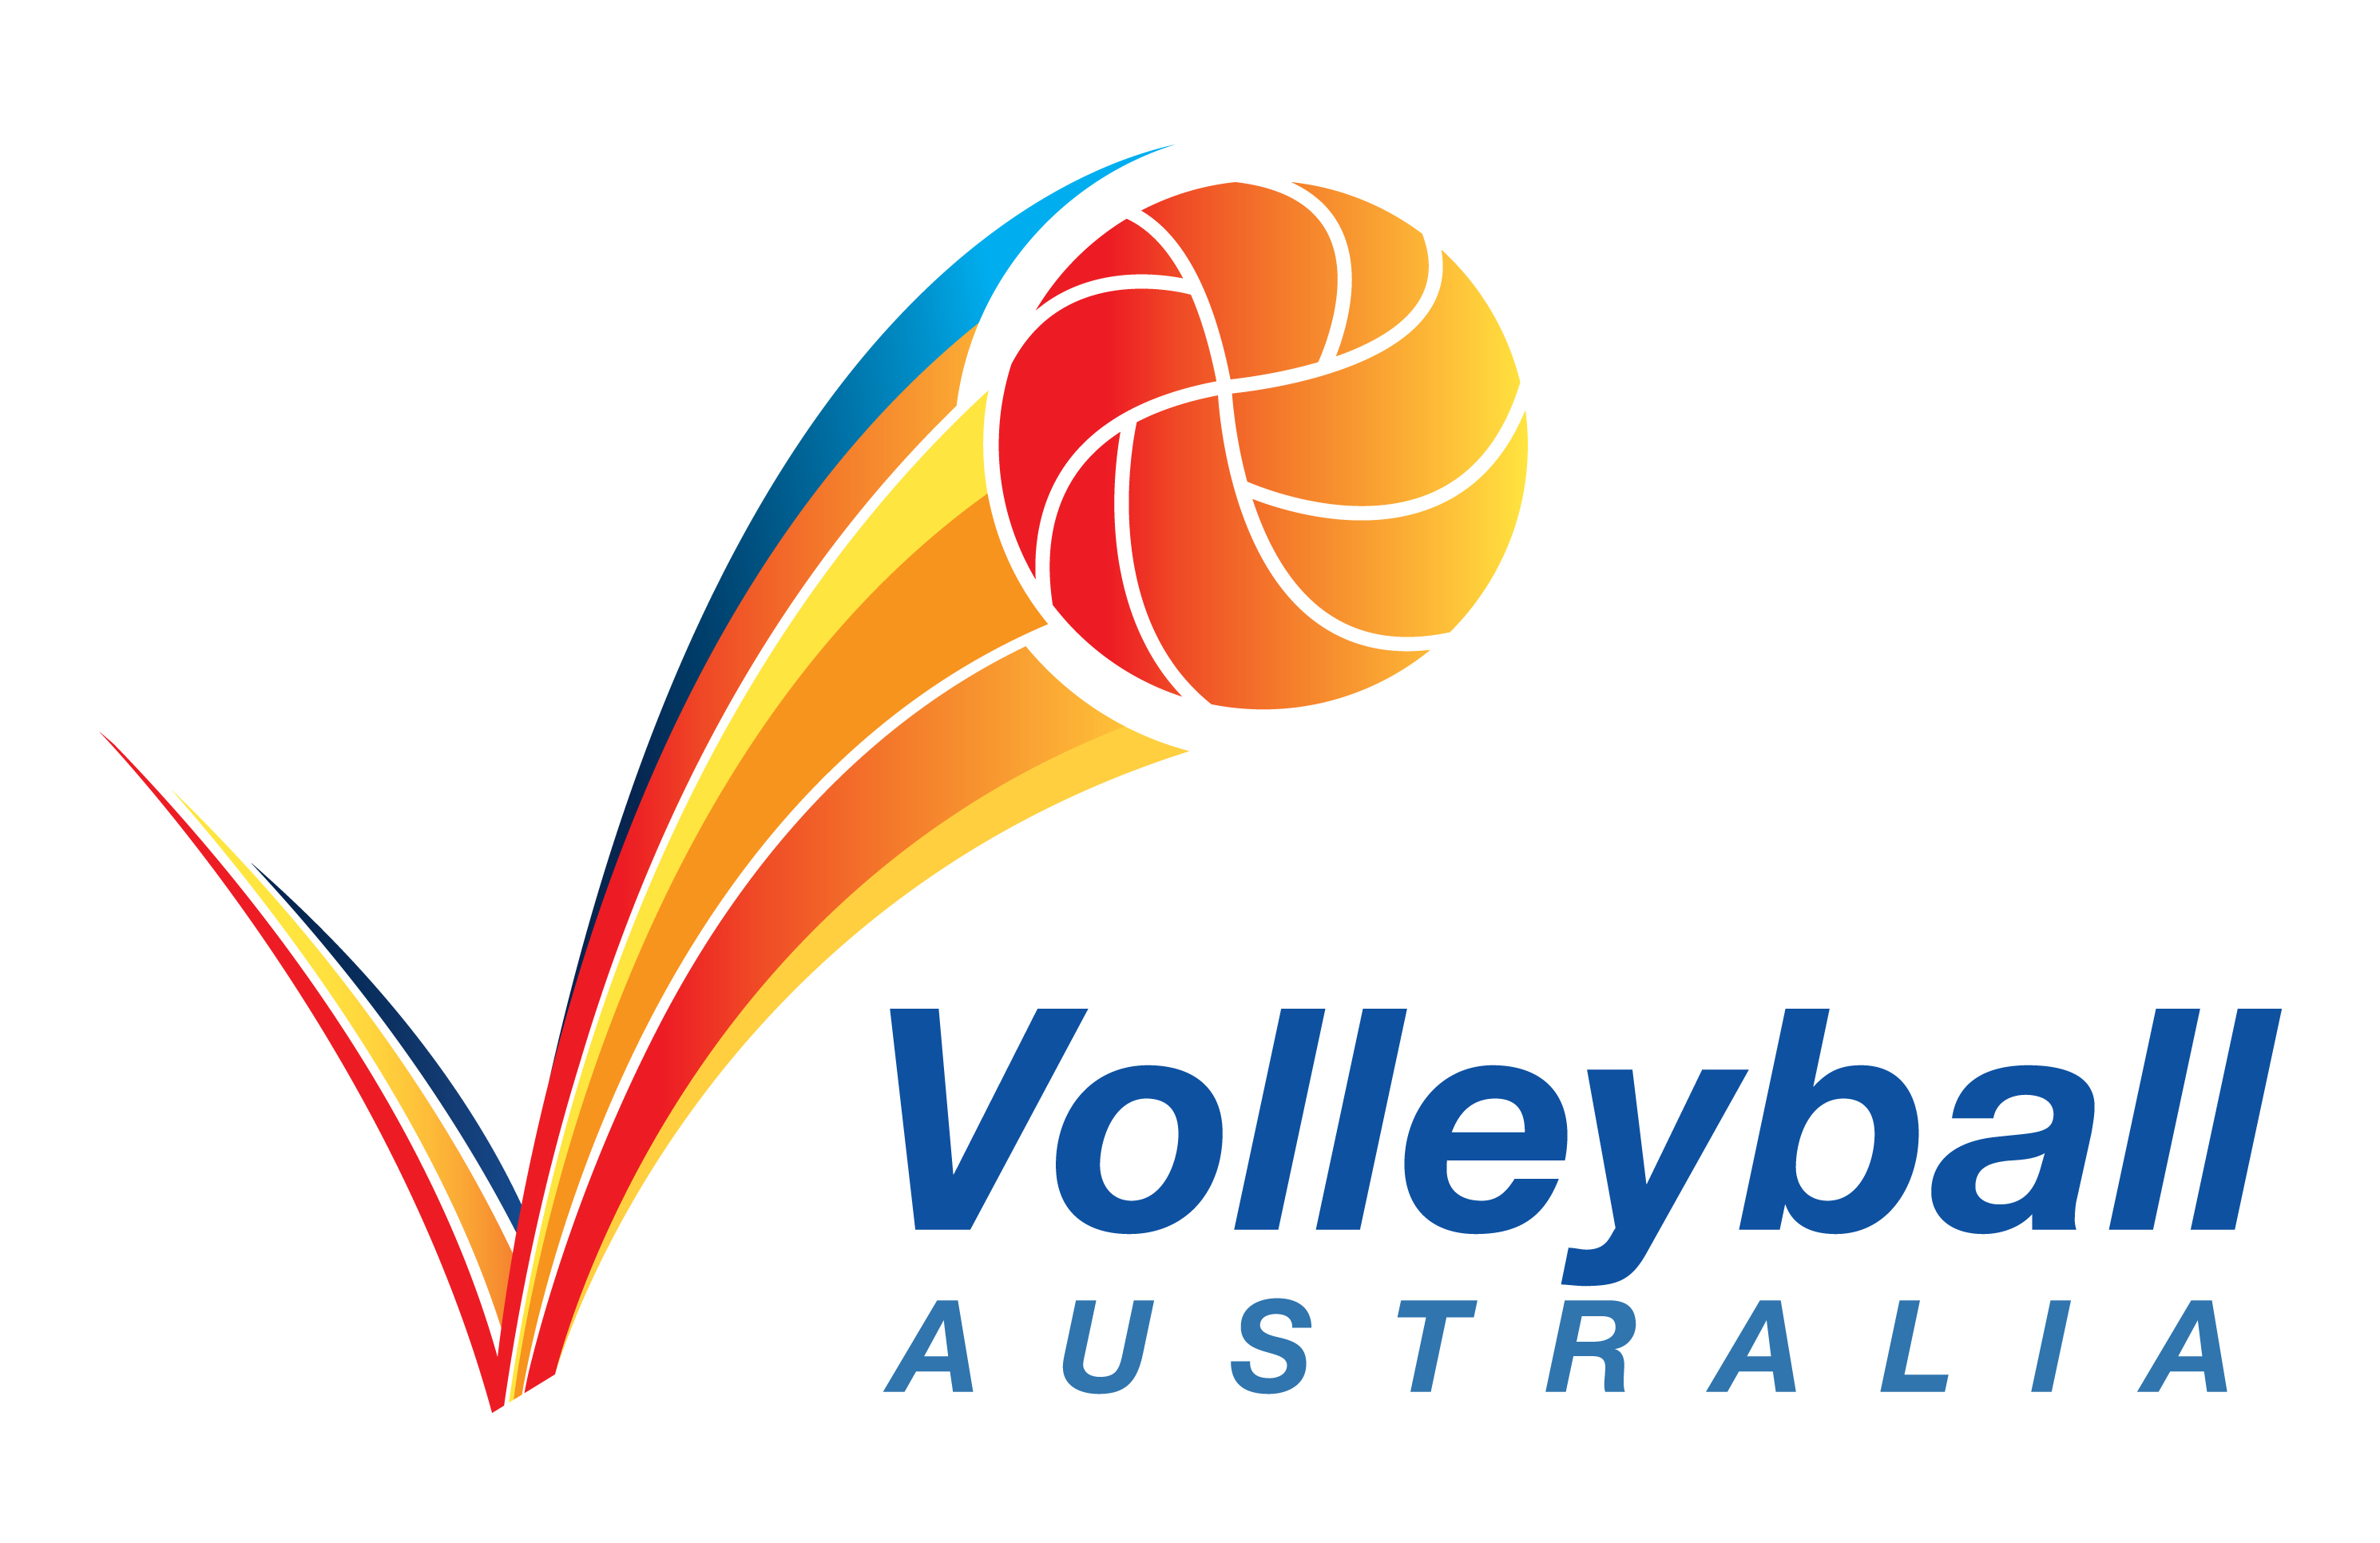 volleyball jersey clipart - photo #15